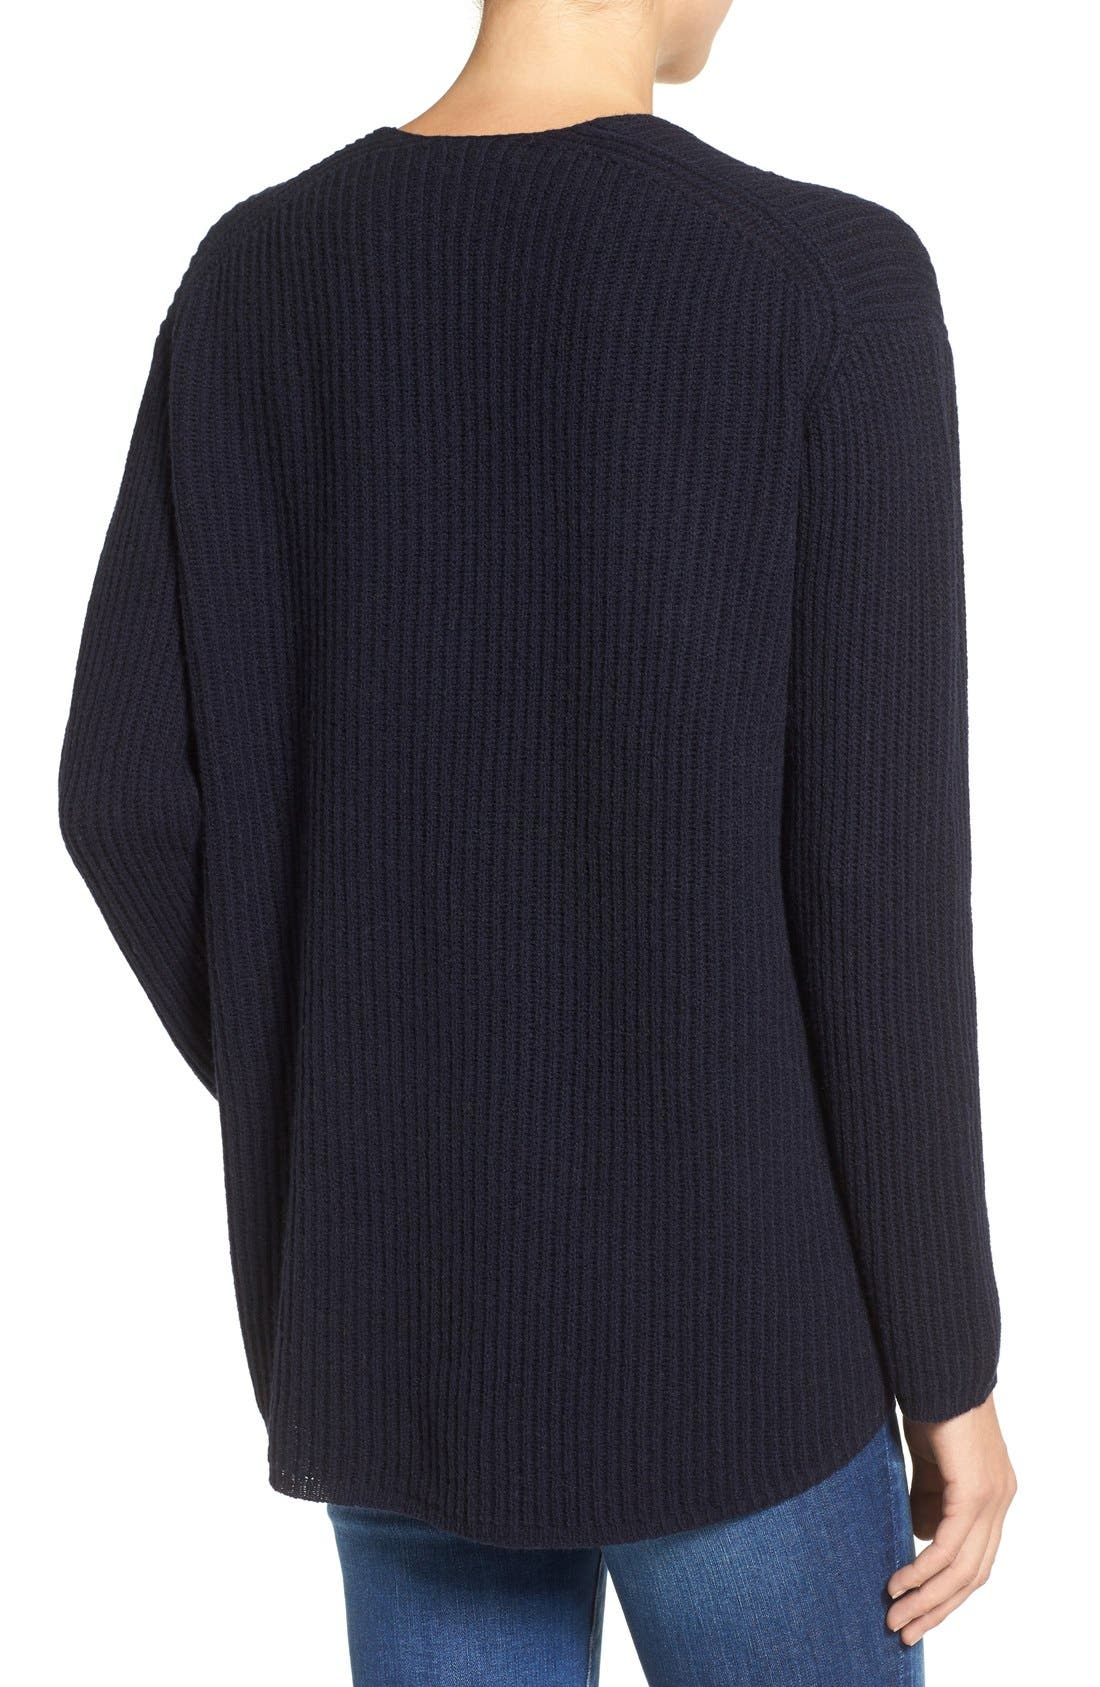 Woodside Pullover Sweater,                             Alternate thumbnail 28, color,